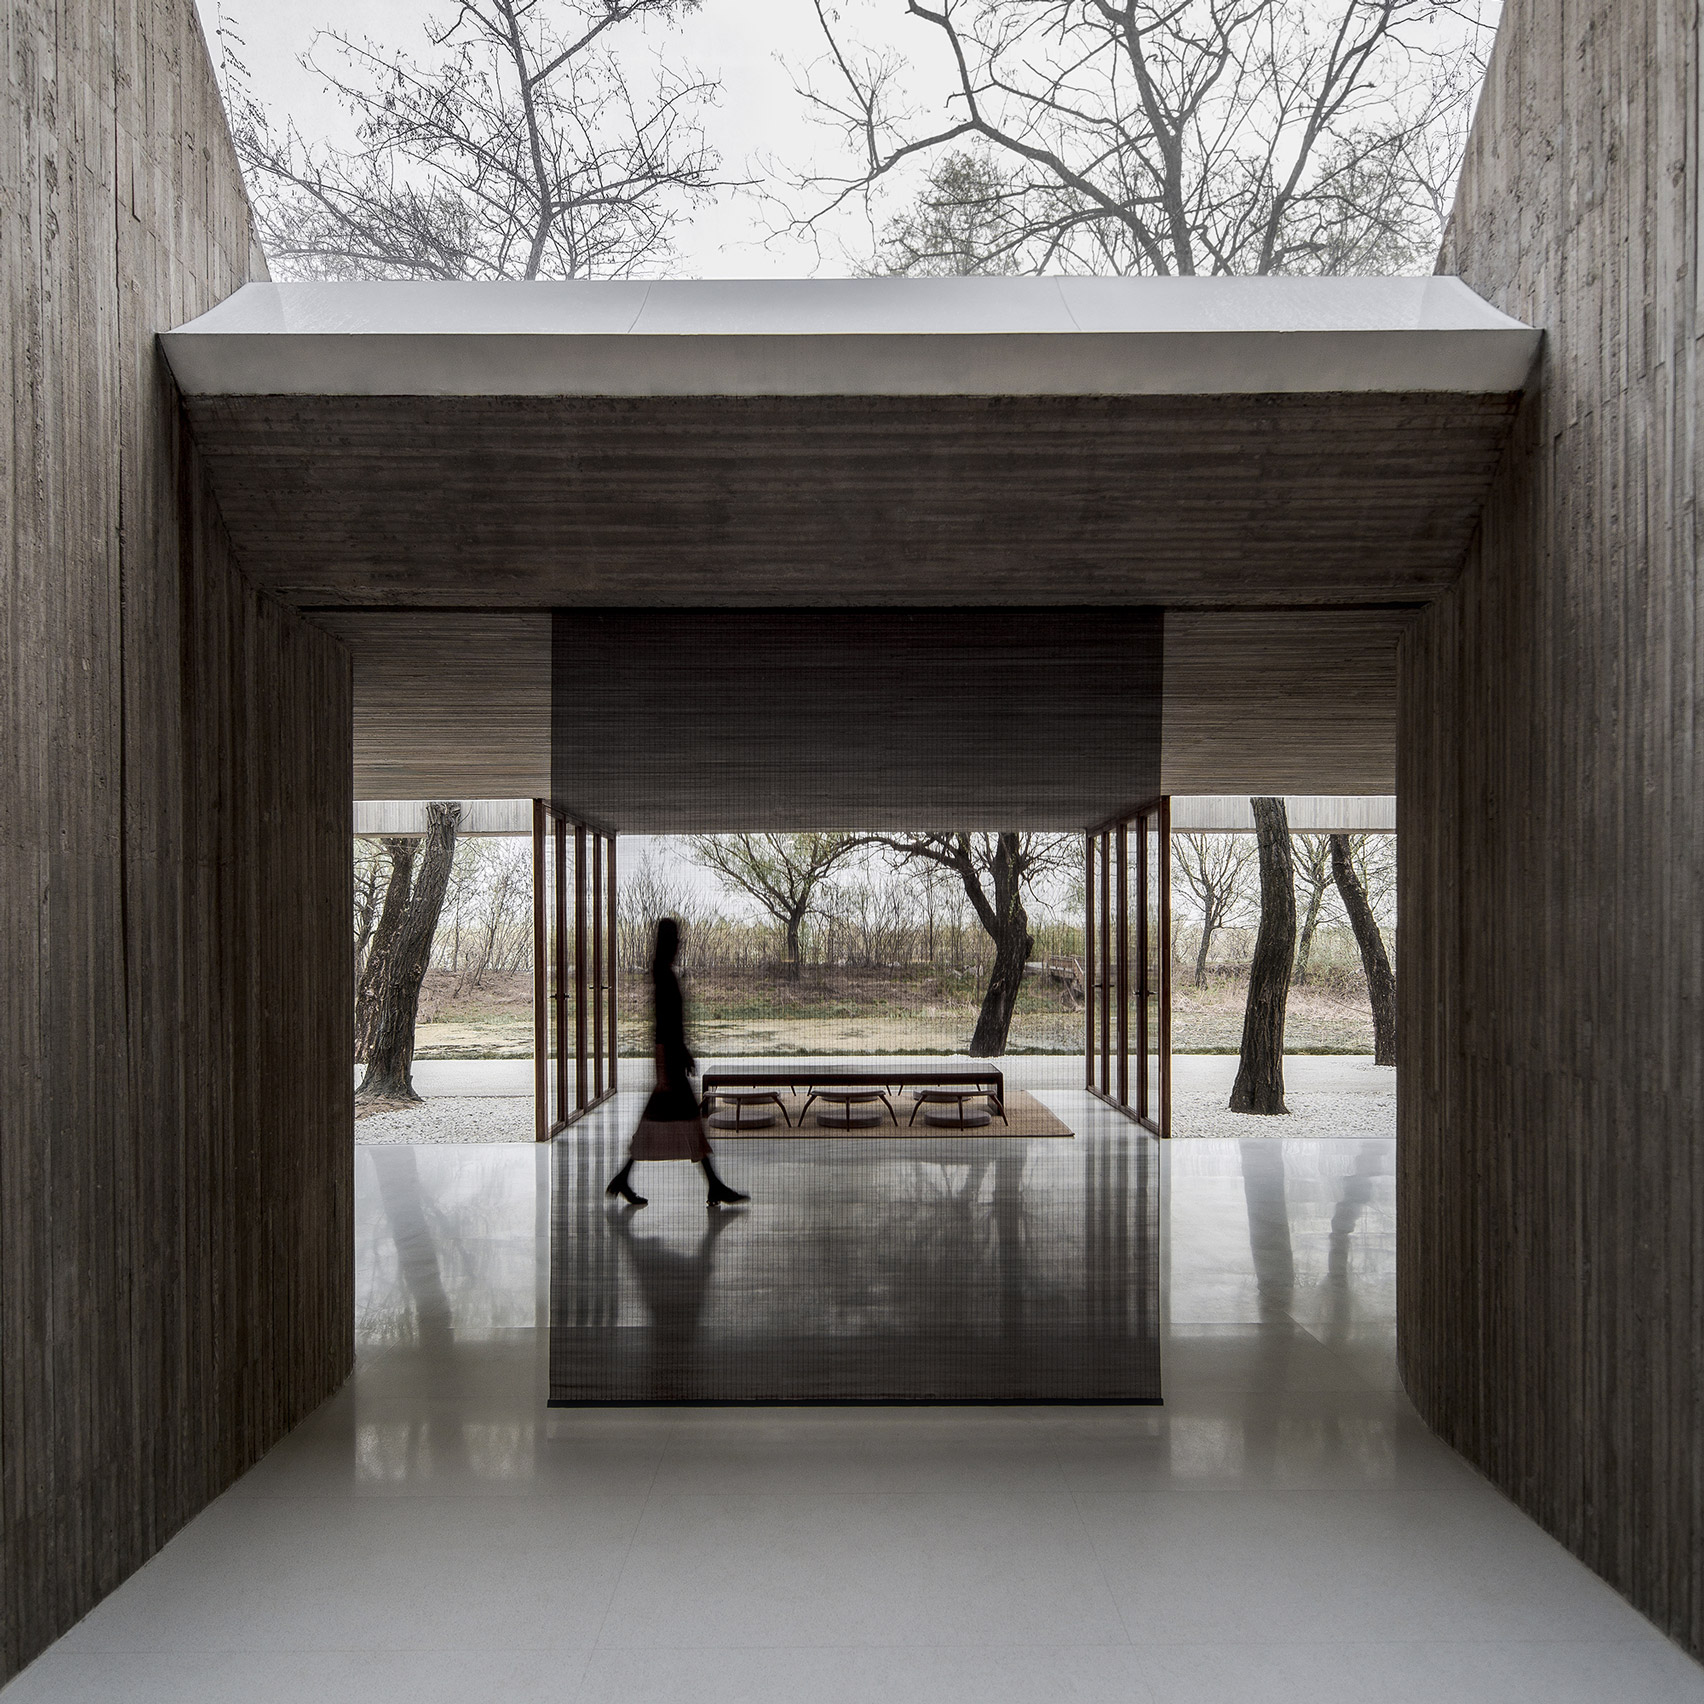 Waterside Buddist Shrine by Archstudio